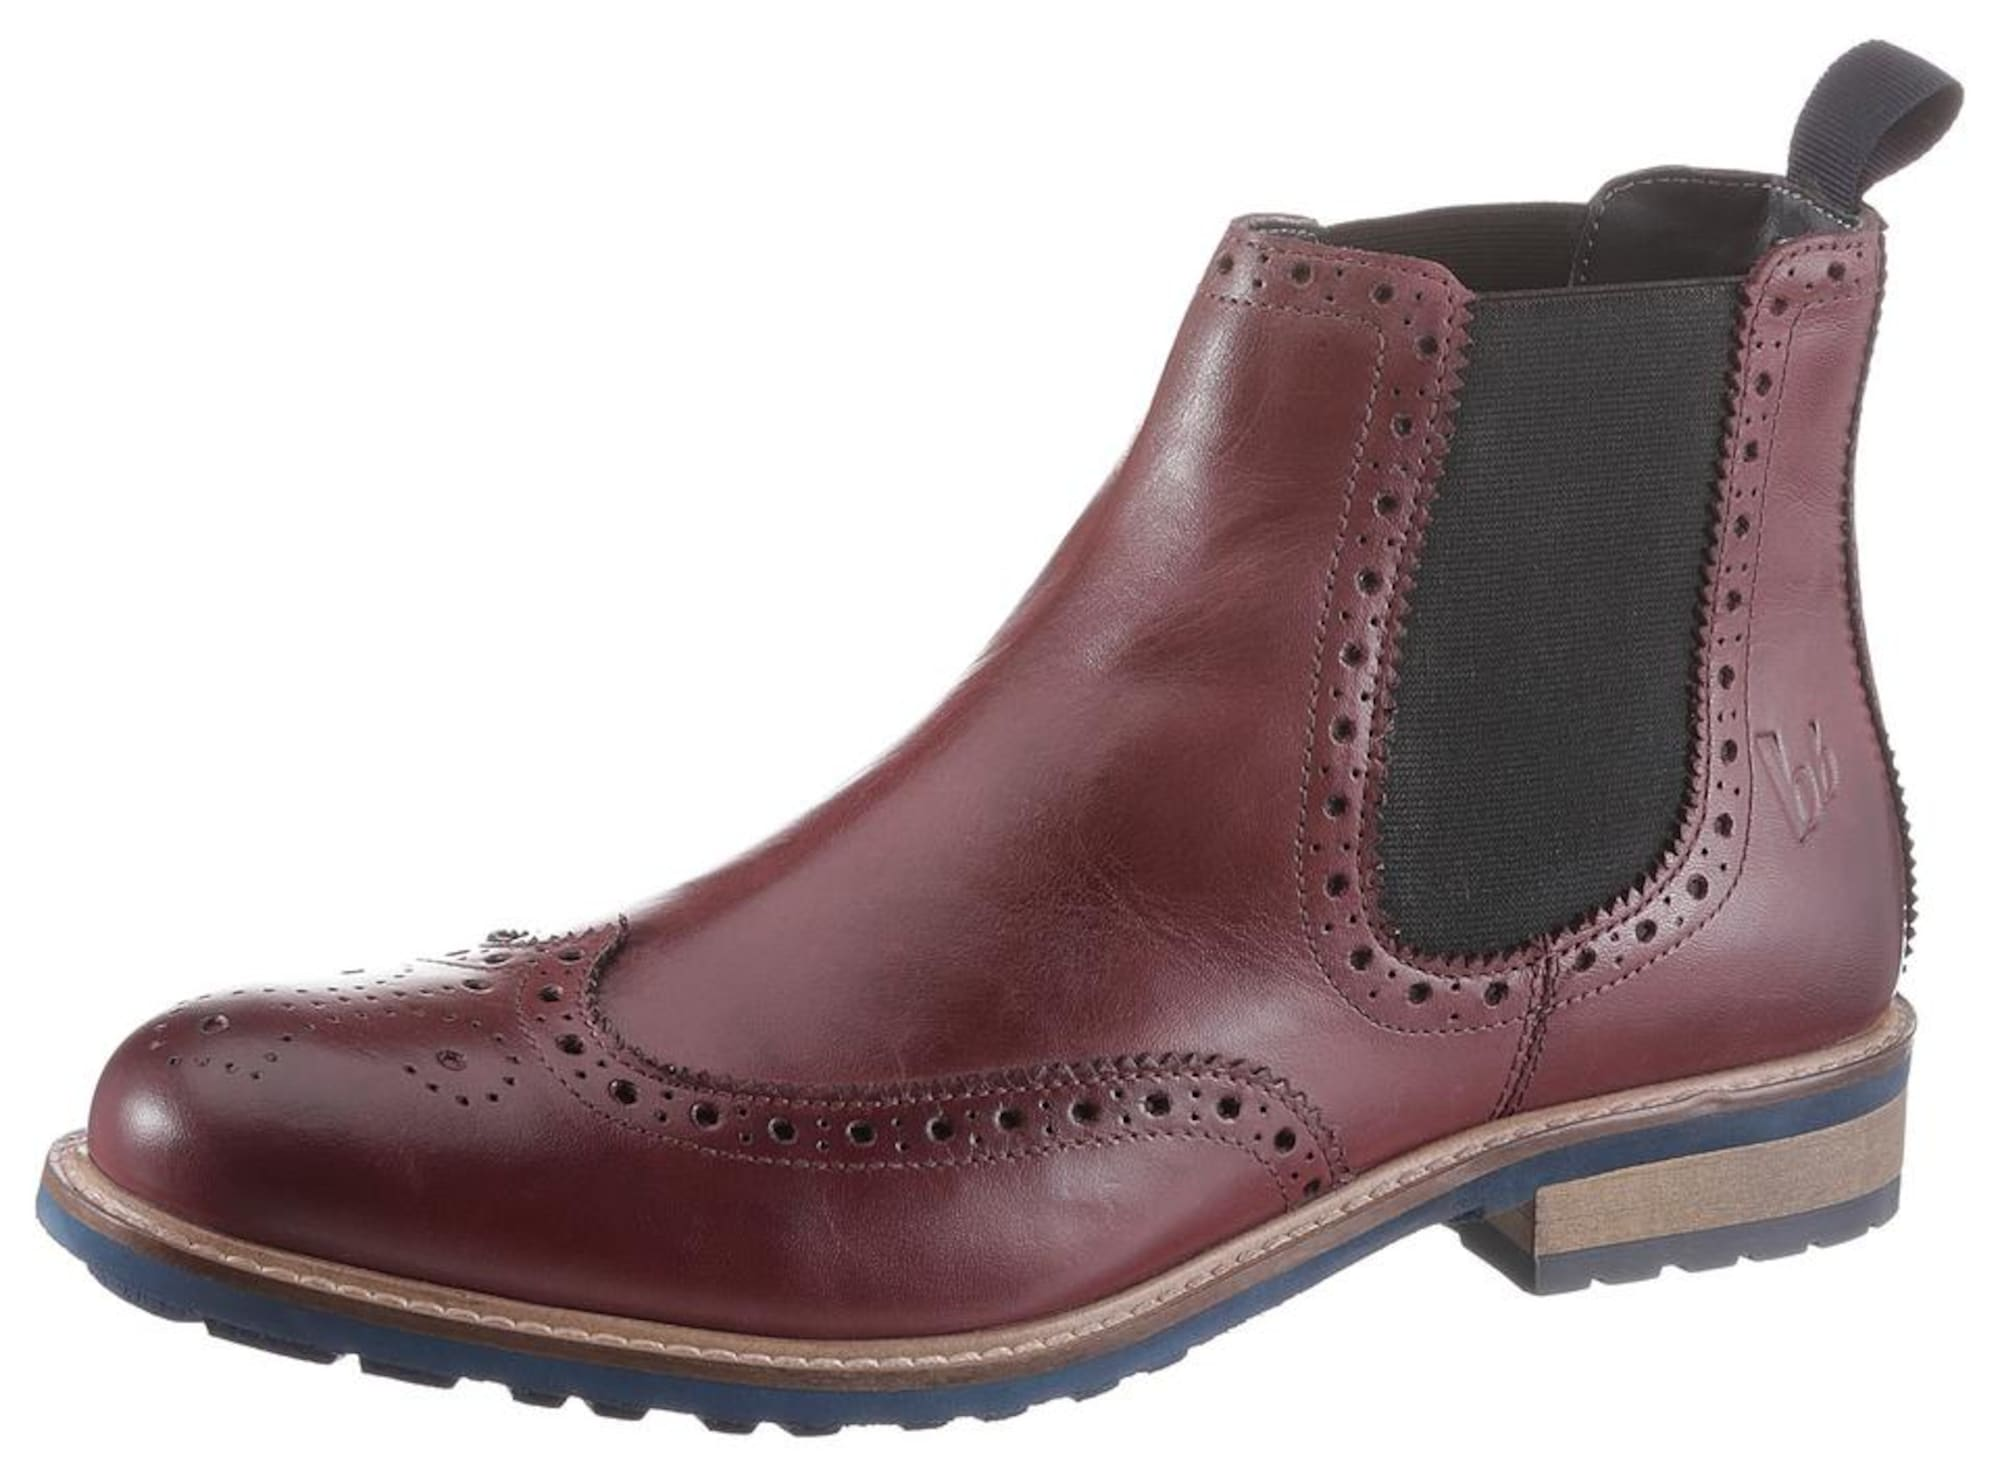 Chelseaboots | Schuhe > Boots > Boots | Bruno Banani